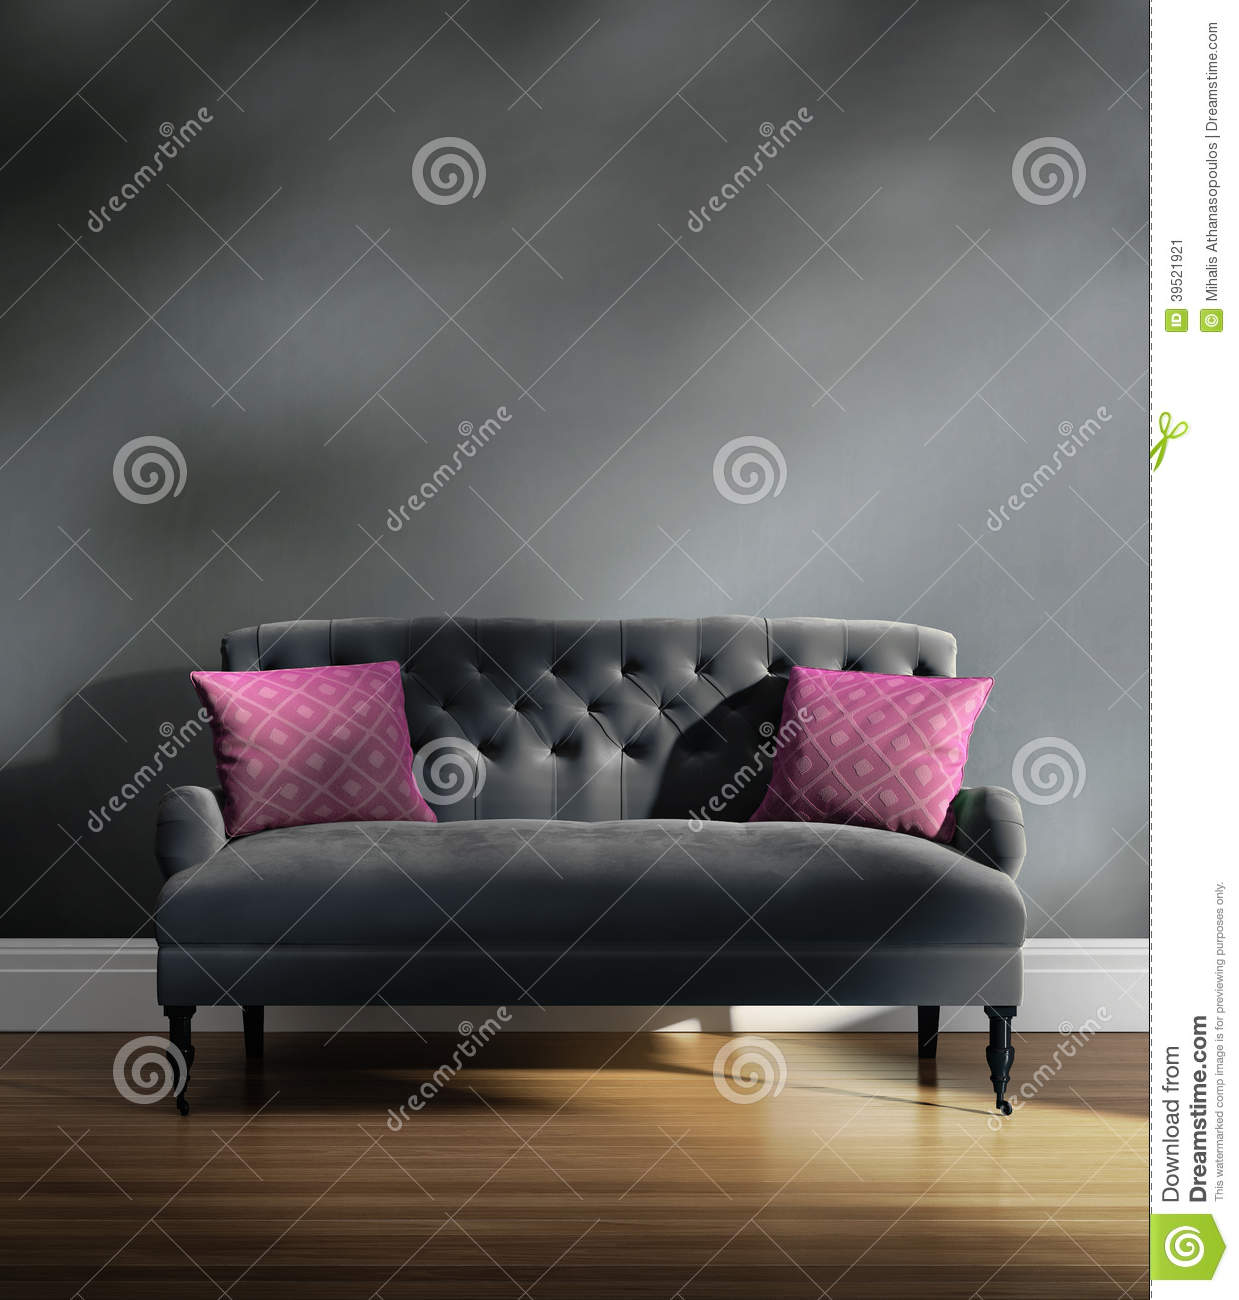 Contemporary Elegant Luxury Grey Velvet Sofa With Pink  : contemporary elegant luxury grey velvet sofa pink cushions d rendering pillows 39521921 from www.dreamstime.com size 1239 x 1300 jpeg 120kB